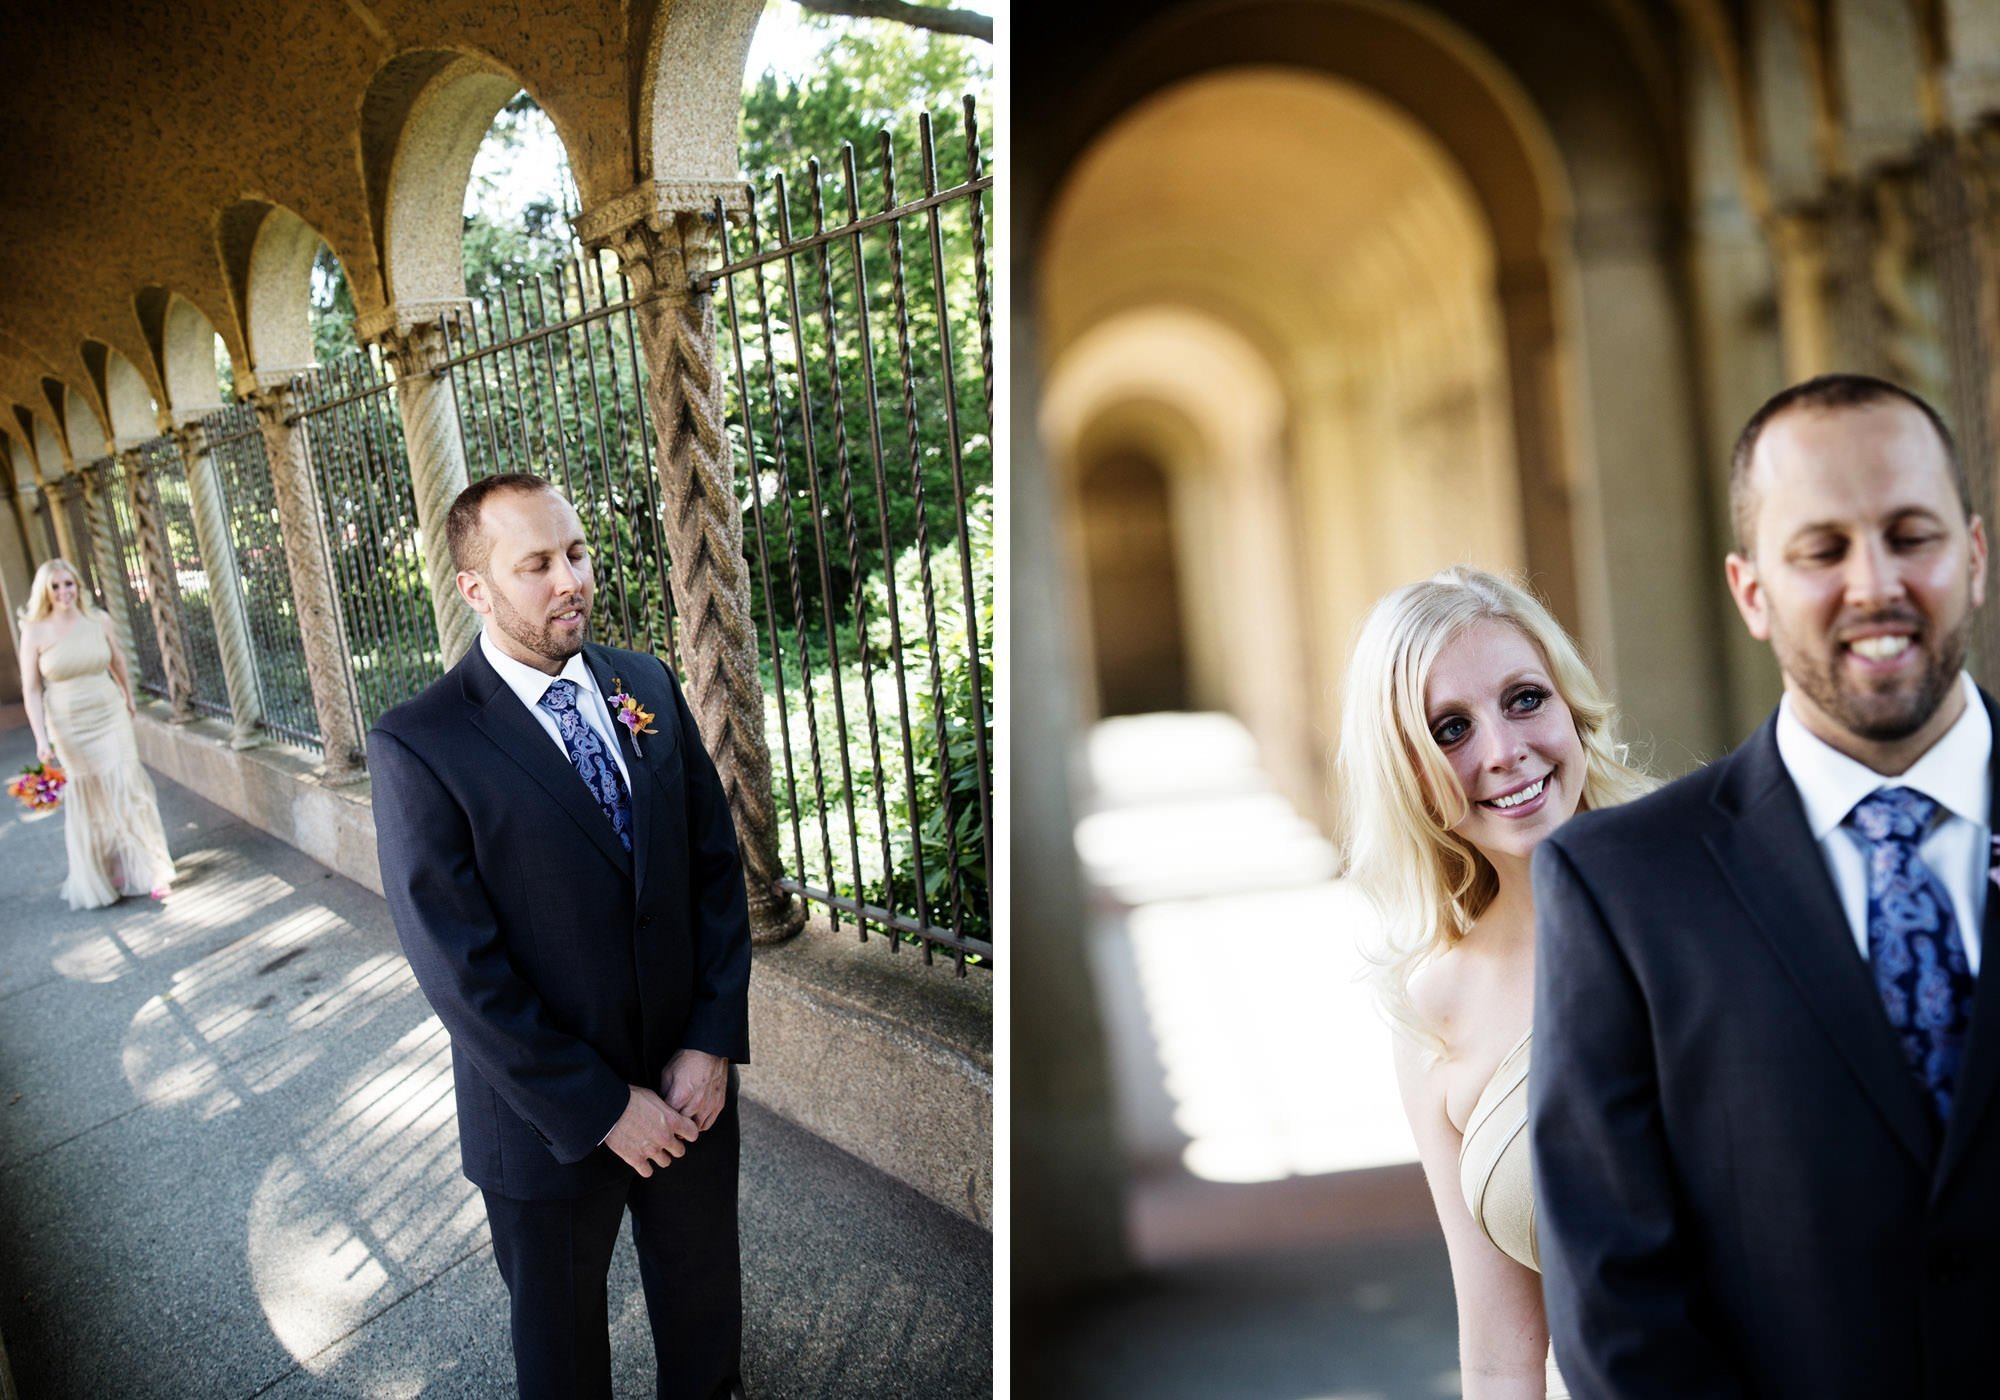 The bride and groom share their first look prior to their St Francis Hall wedding.